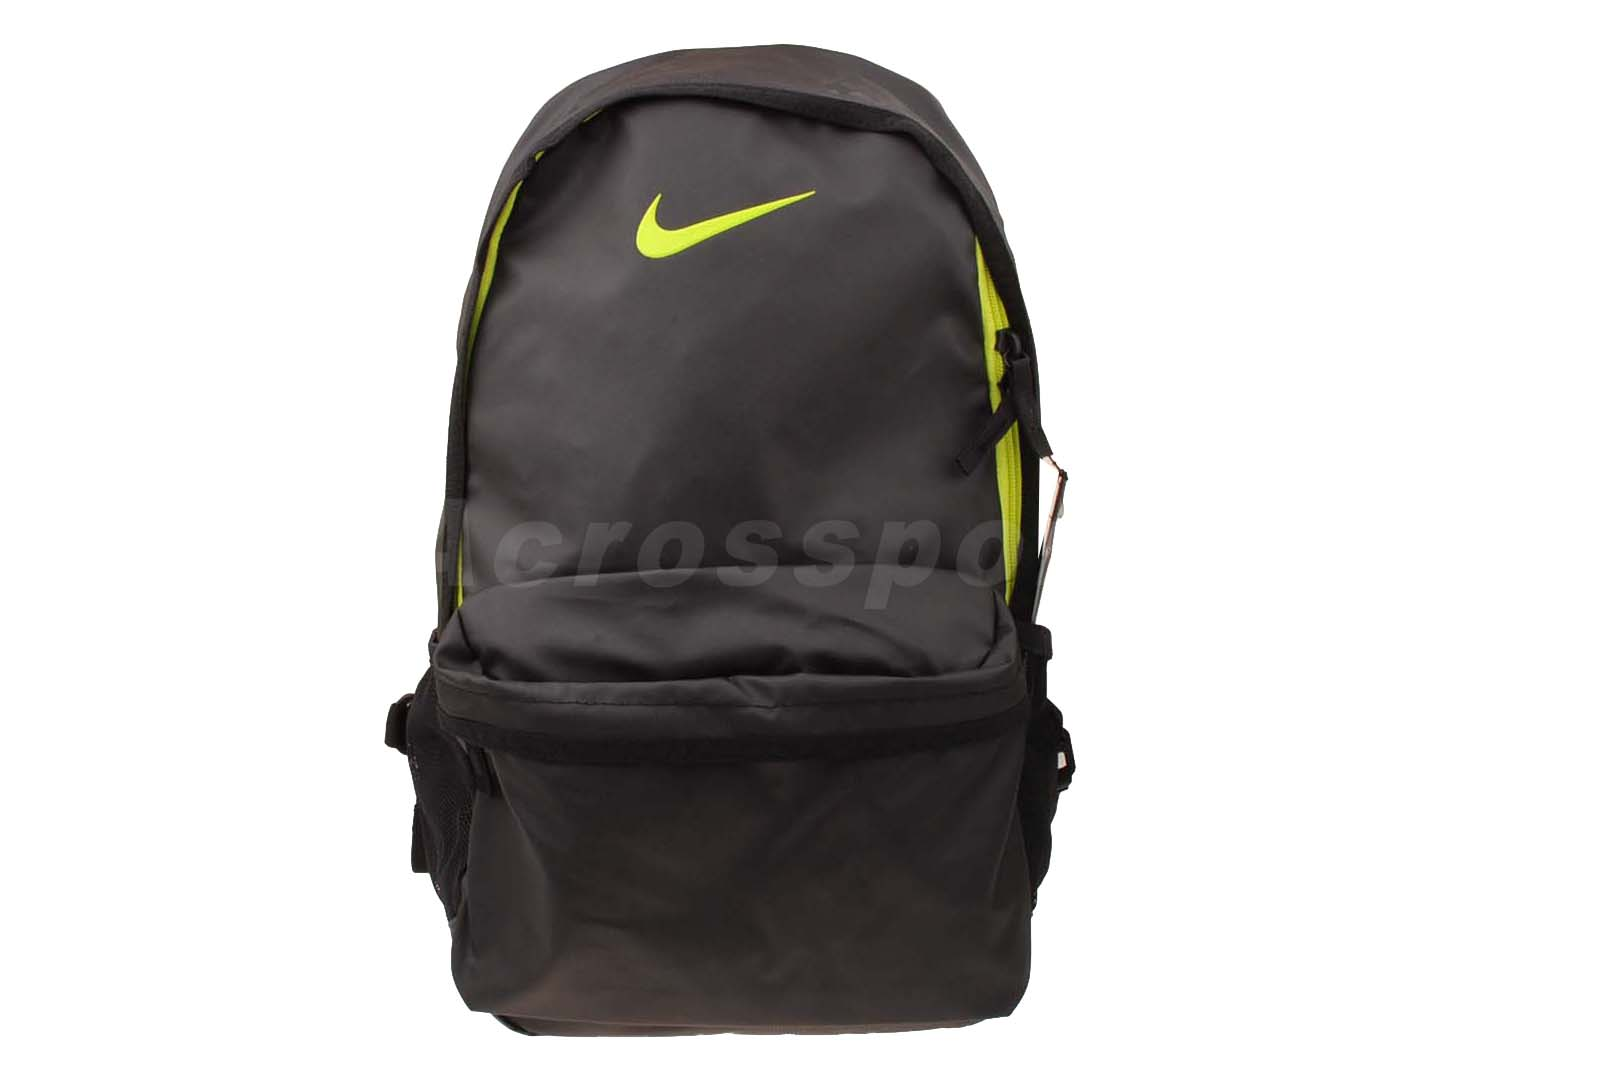 nike basketball elite backpack black green mens sports bag